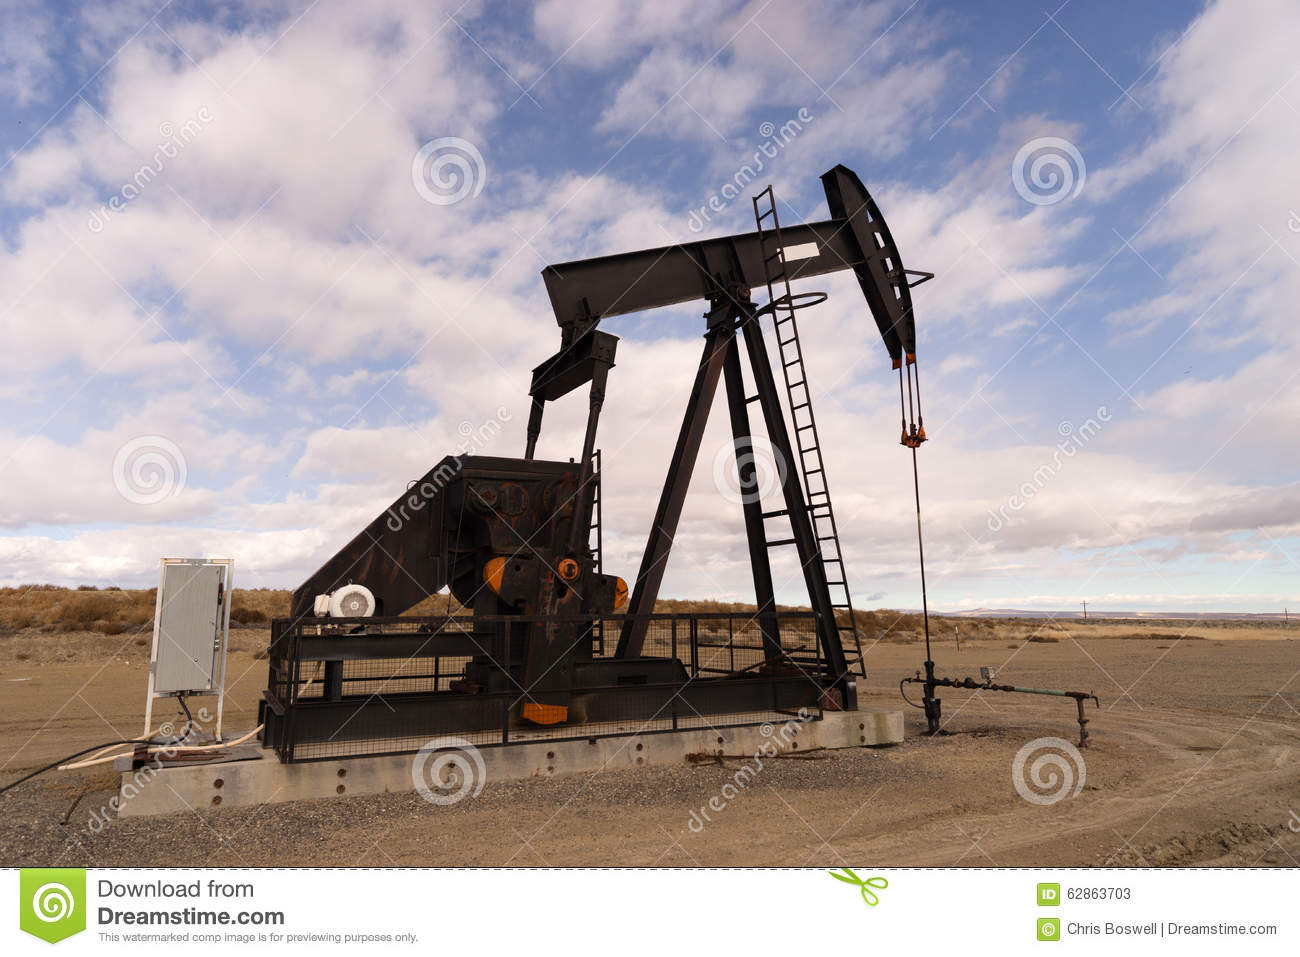 Wyoming Industrial Oil Pump Jack Fracking Crude Extraction